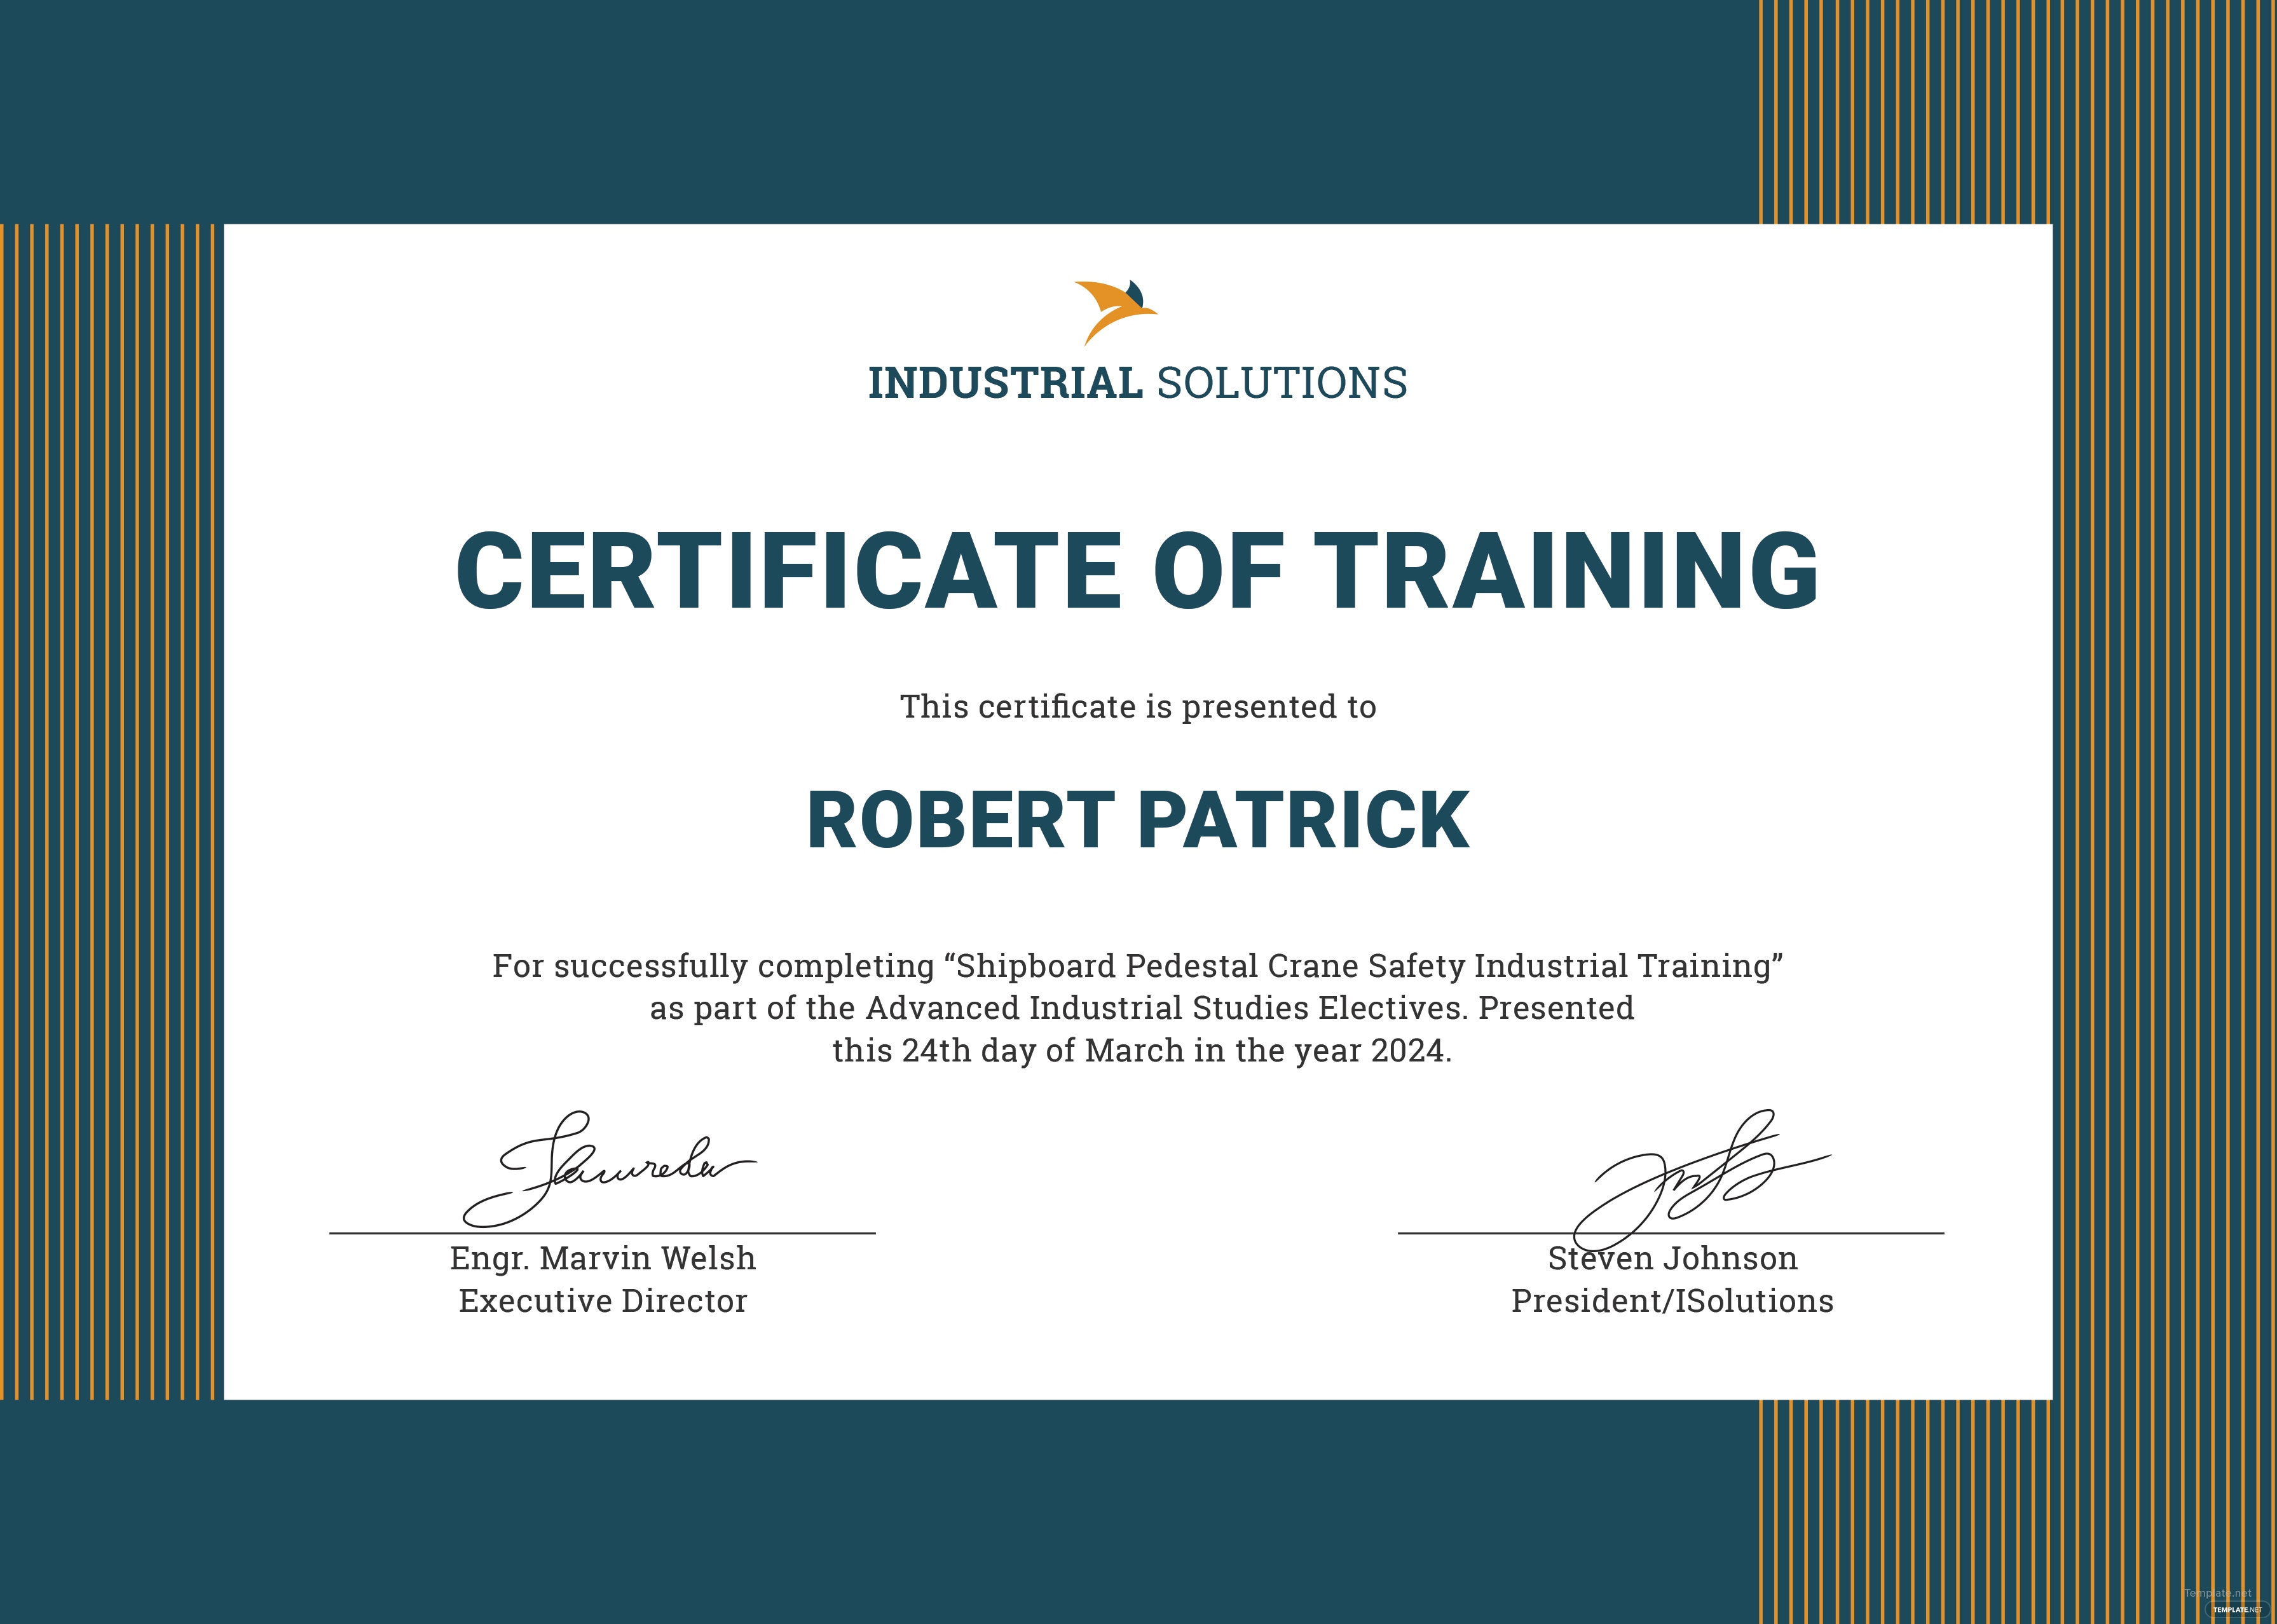 Free industrial training certificate template in adobe for Certification document template